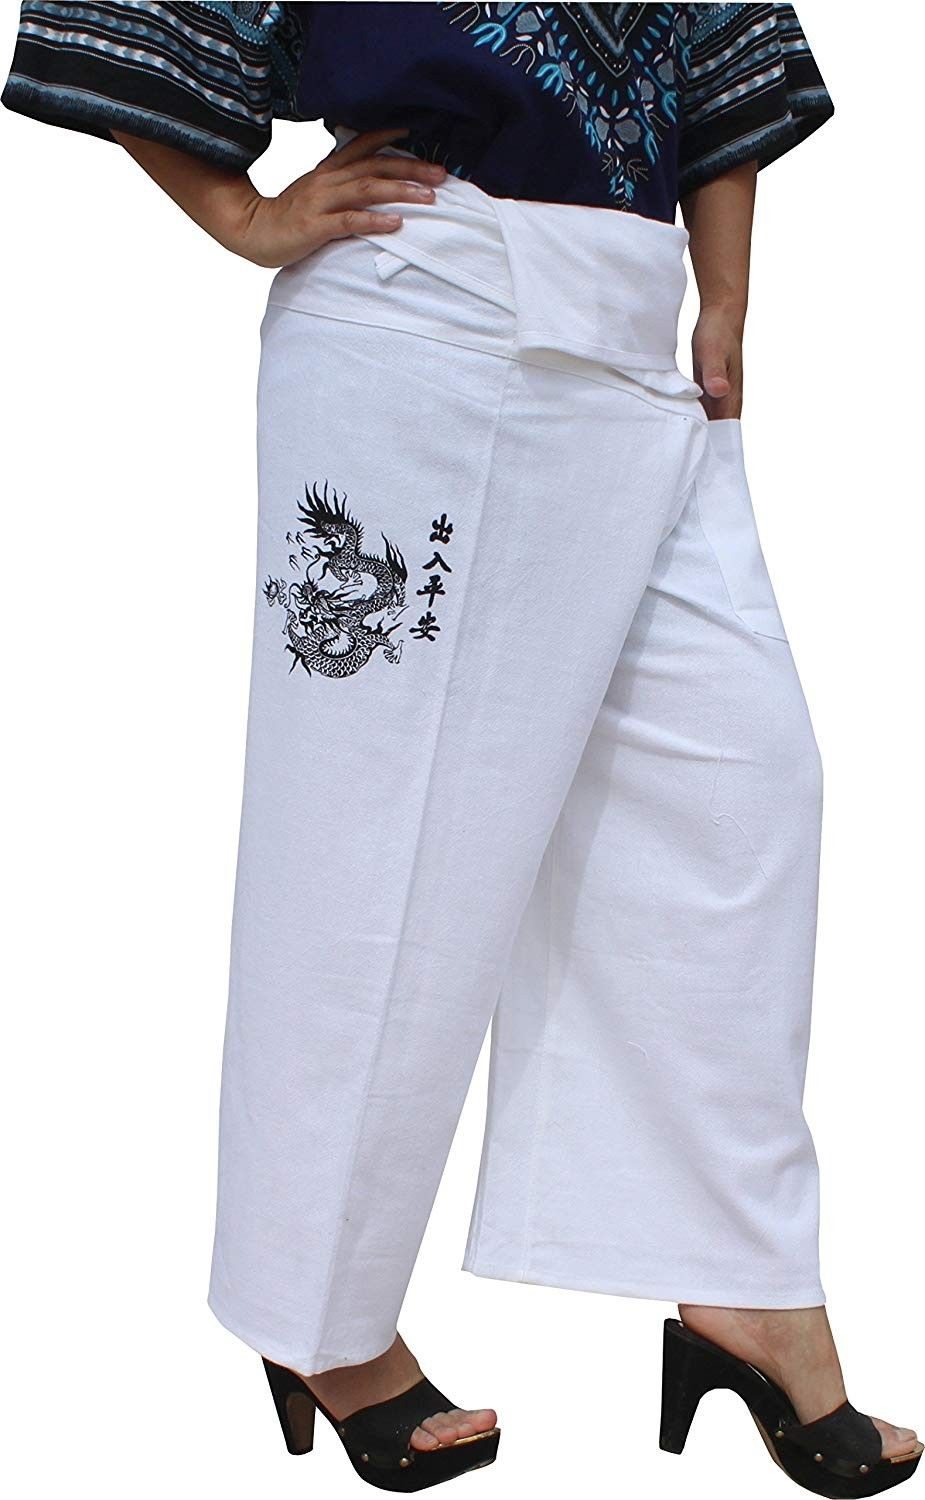 Chinese Good Luck Dragon Woodblock Print Cotton Fisherman Pants - White - C712O0C3VPG - Sports & Fit...